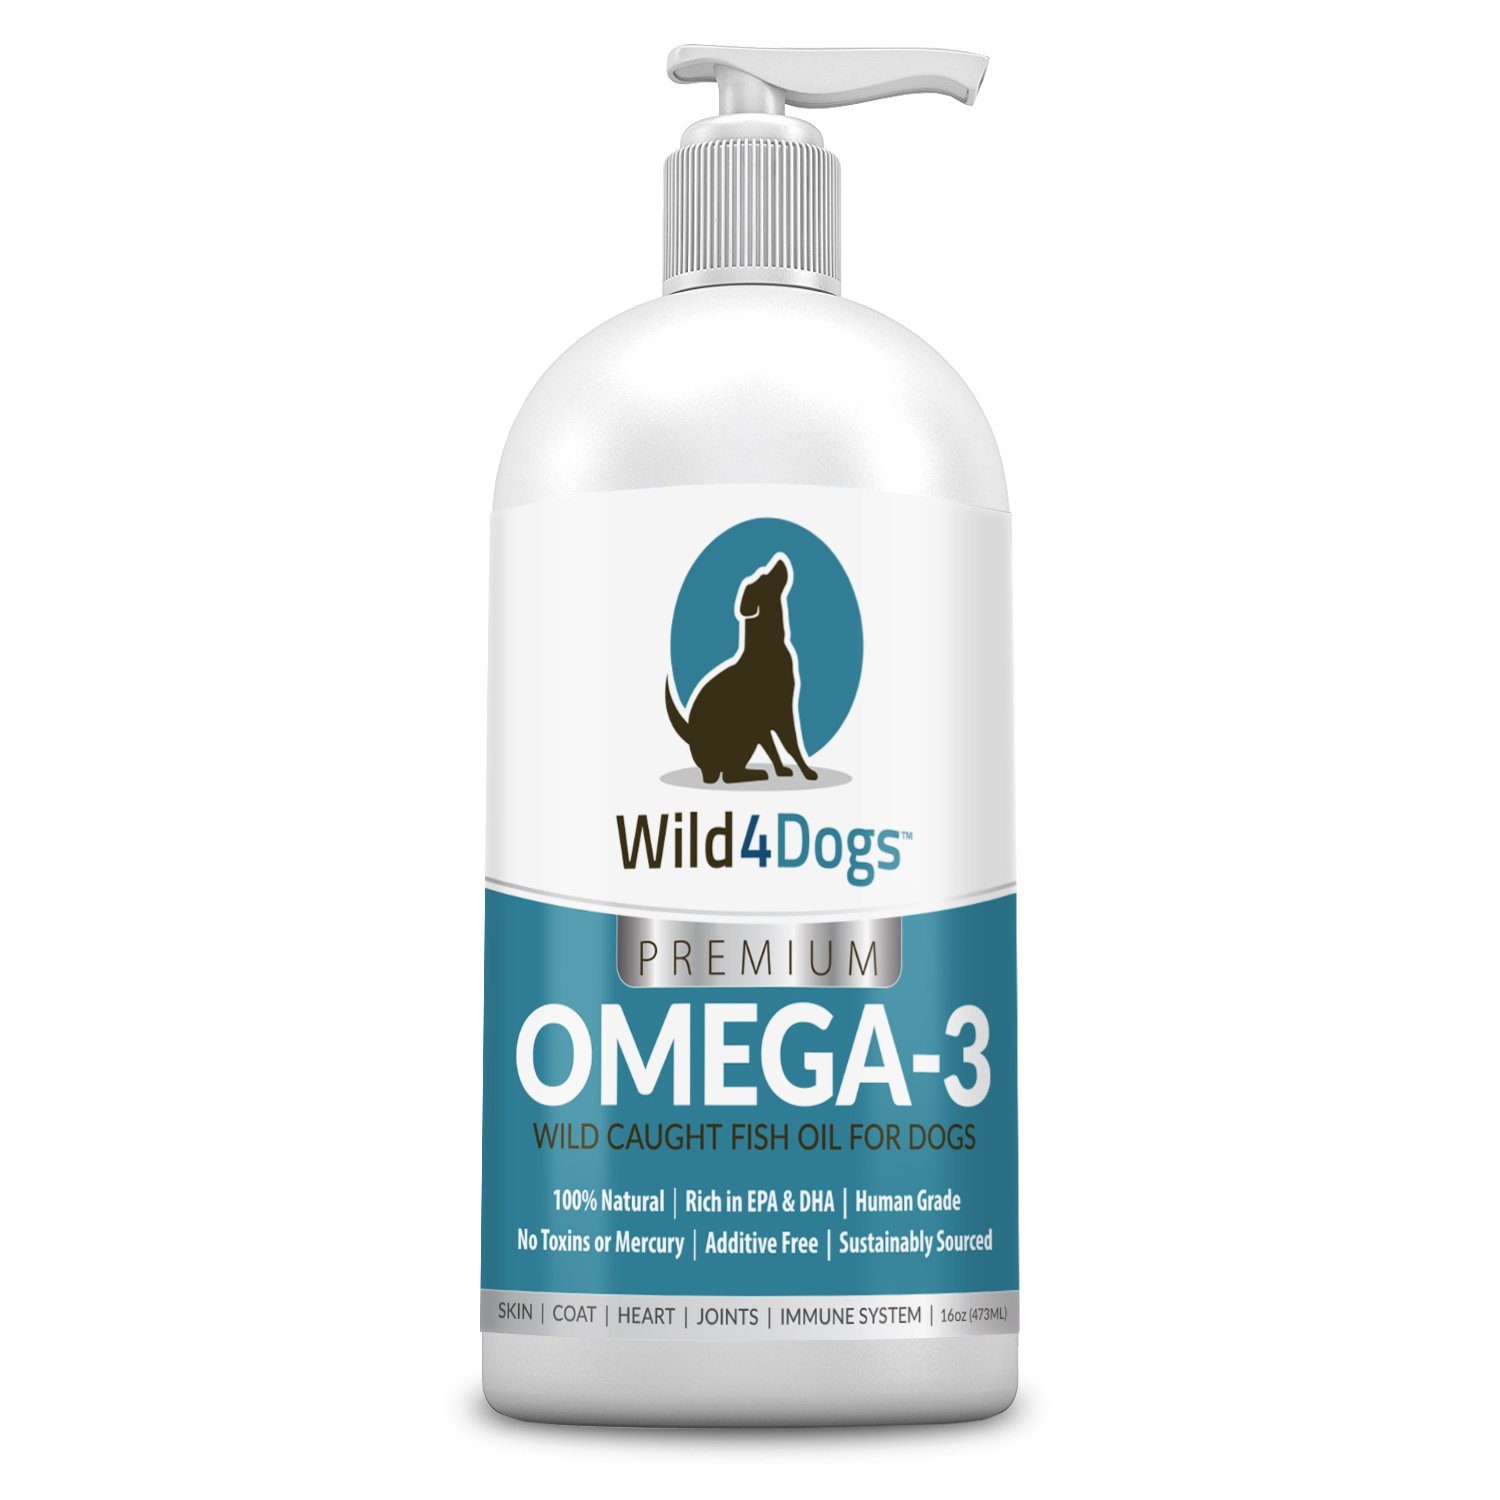 Premium Omega 3 Fish Oil for Dogs - Promotes Healthy Coat, Skin, Heart, and Eases Joint Pain - Omega 3 for Dogs is All-Natural, Nutrient Rich, Wild Caught - Dog Fish Oil Supplement, 16 fl oz